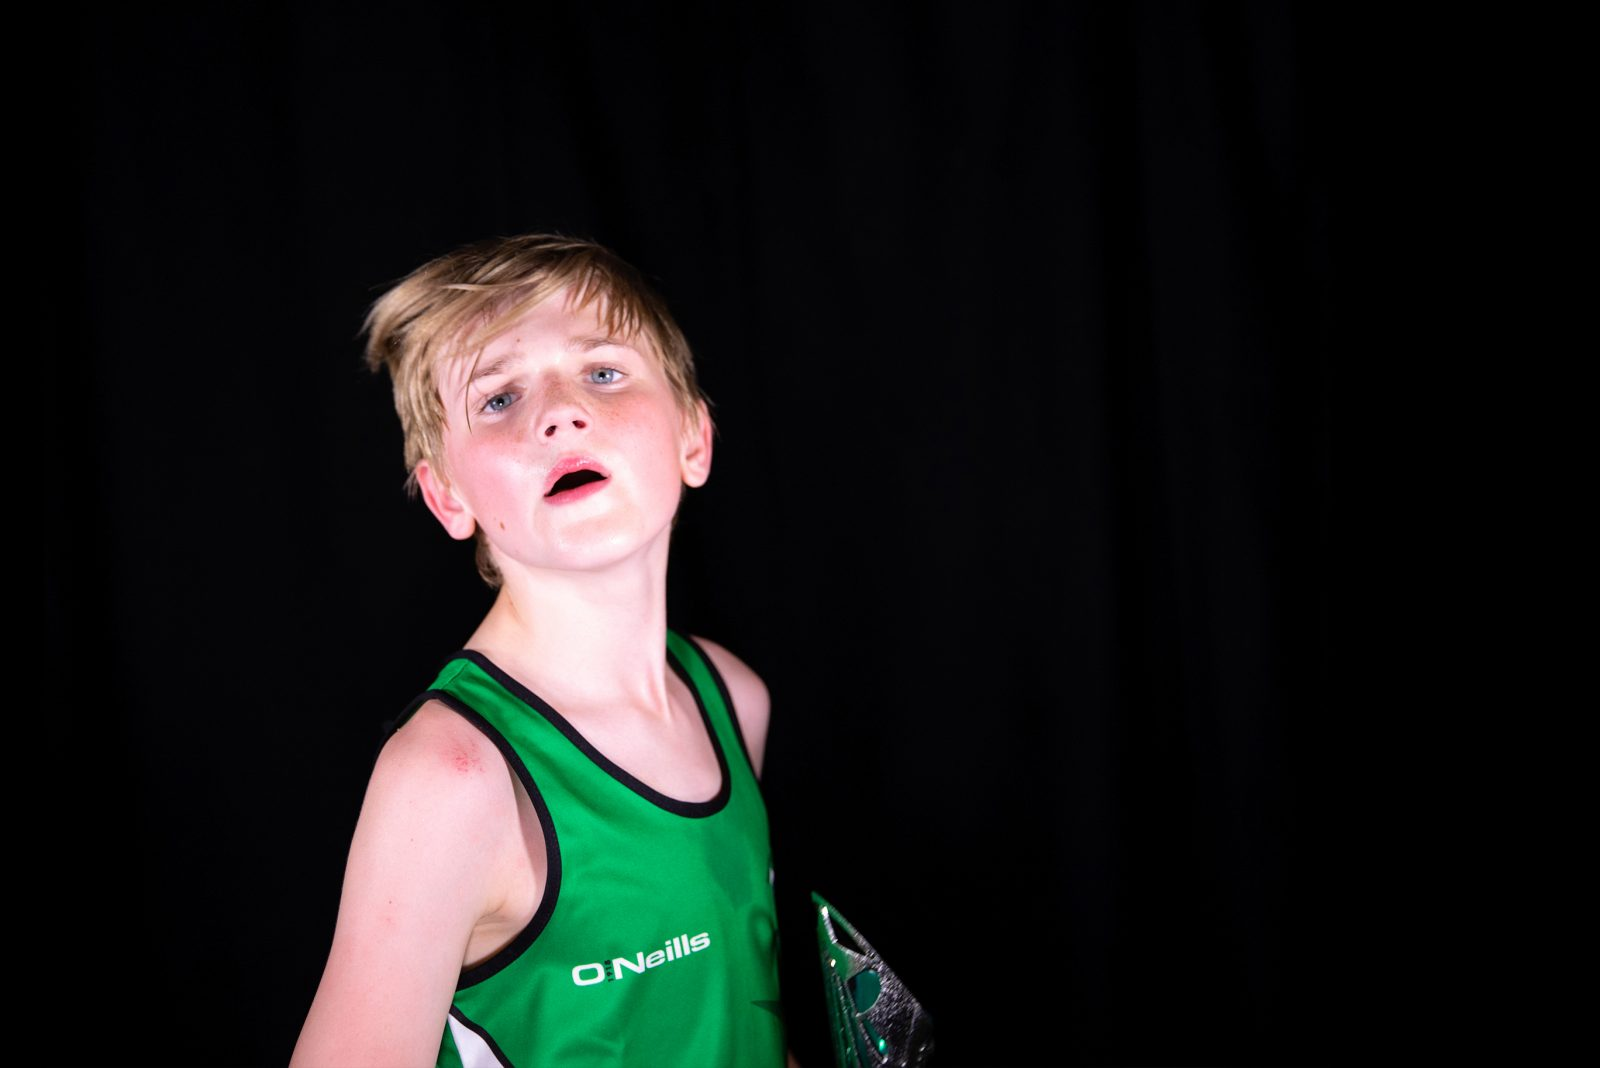 A young person with light hair, wearing a green sports vest looks as if they have just turned to look at the camera. They are red faced and sweaty.